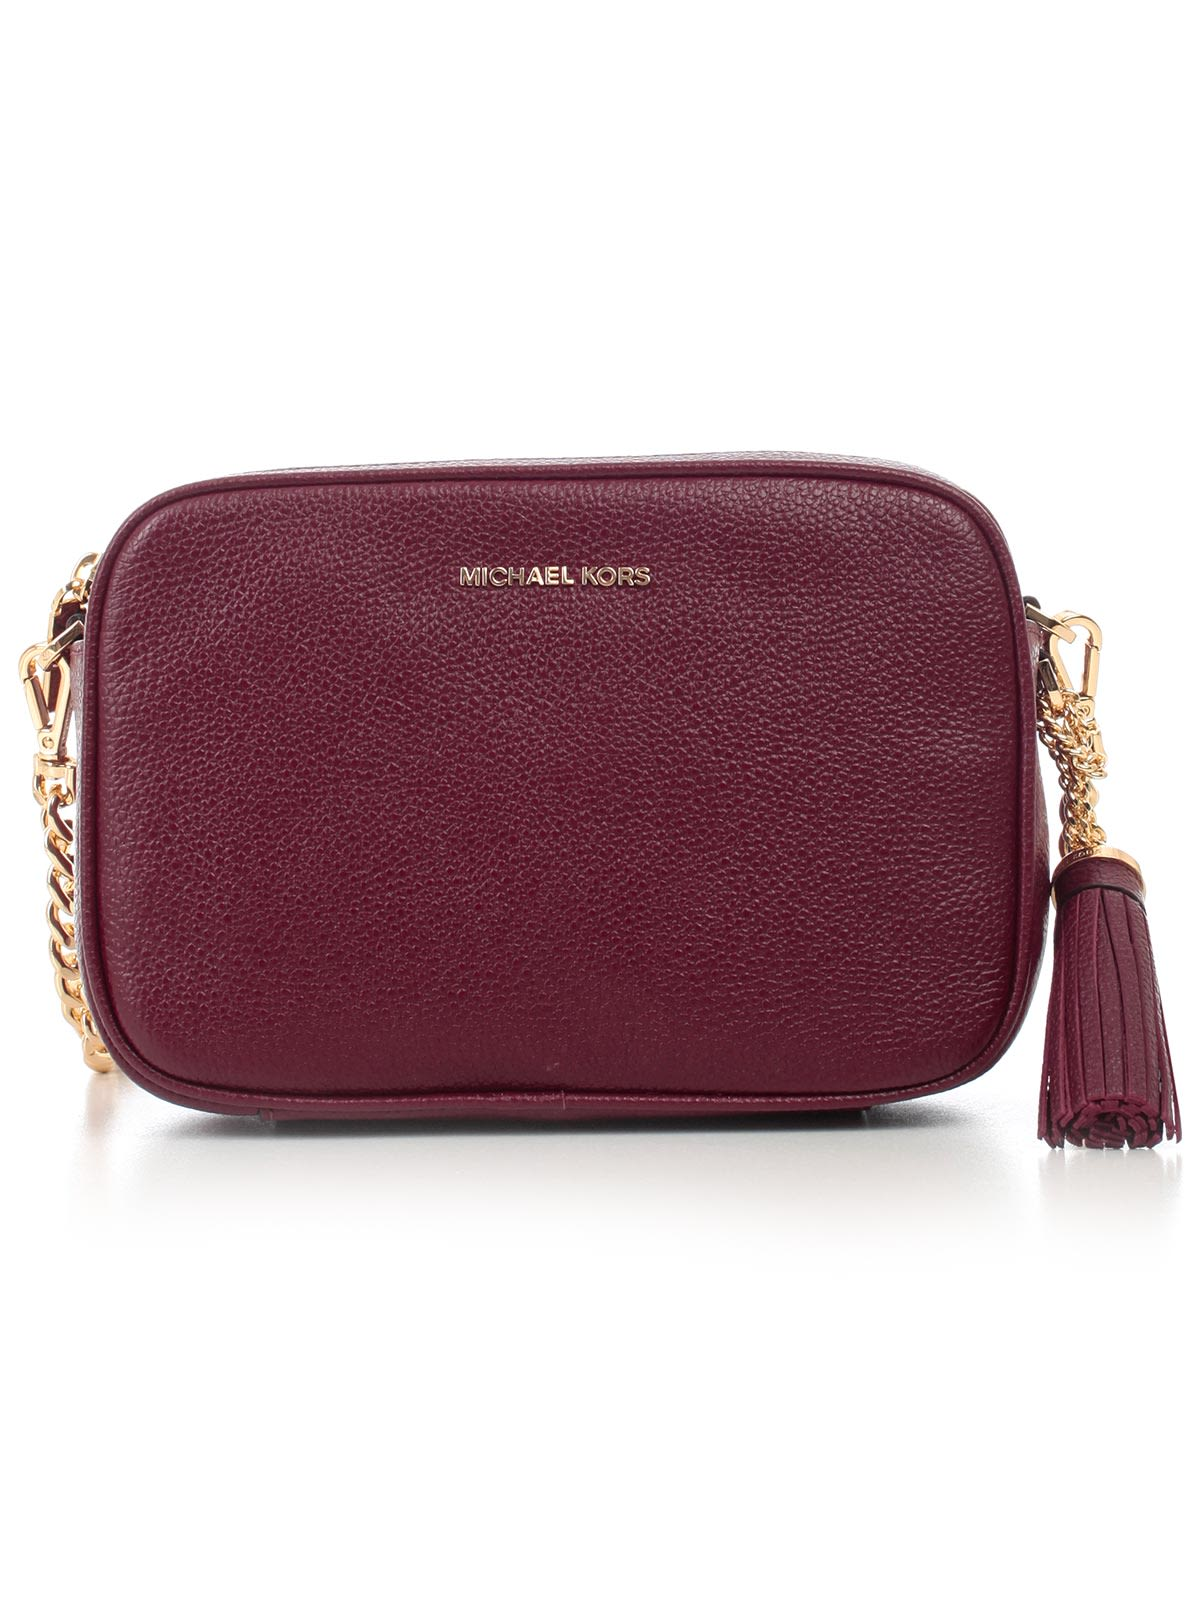 e1666d24da72 MICHAEL Michael Kors Ginny Medium Camera Shoulder Bag - Oxblood ...